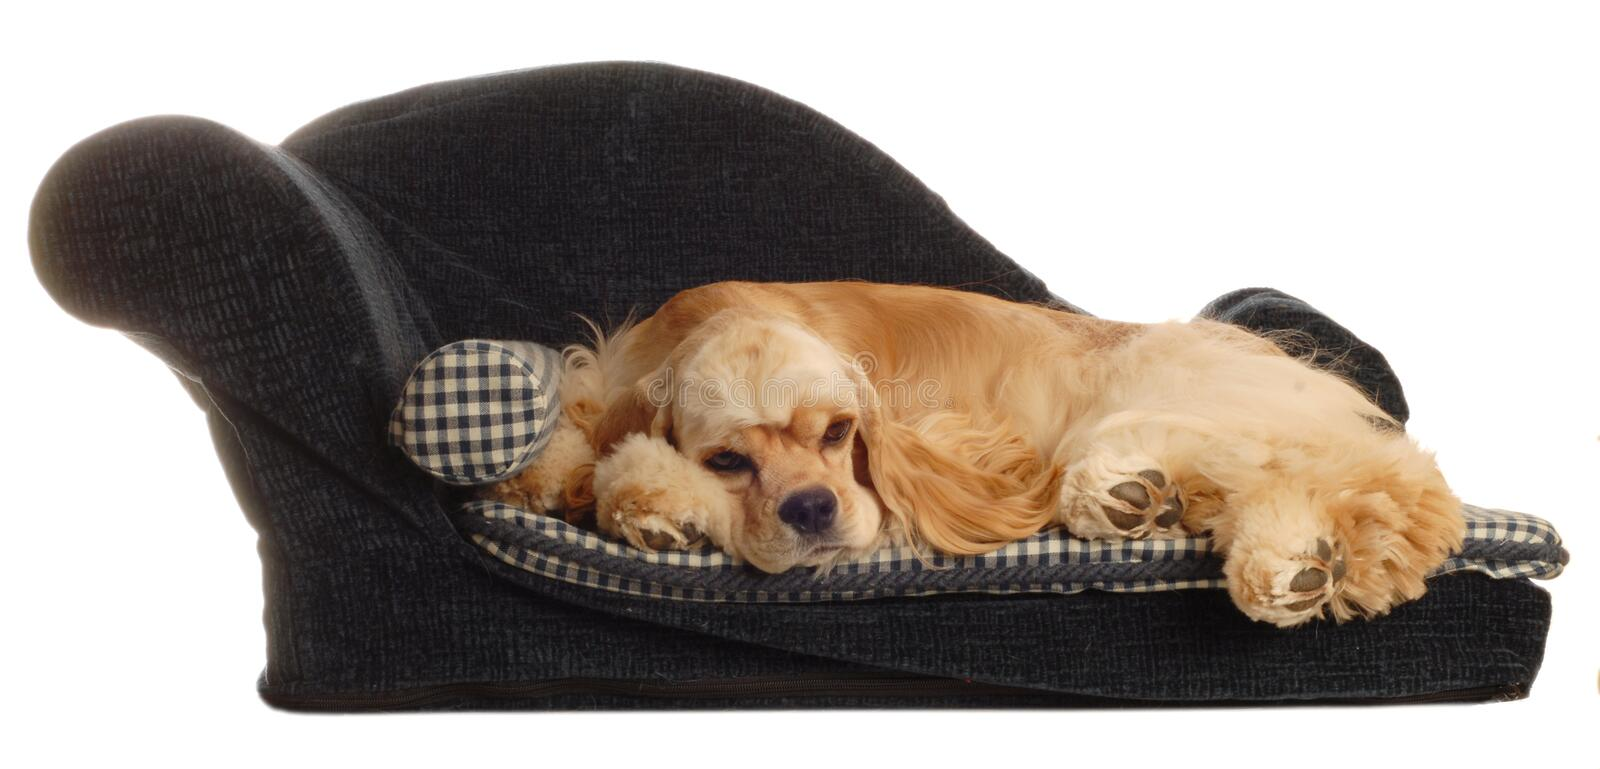 Spaniel sleeping on dog bed royalty free stock photos